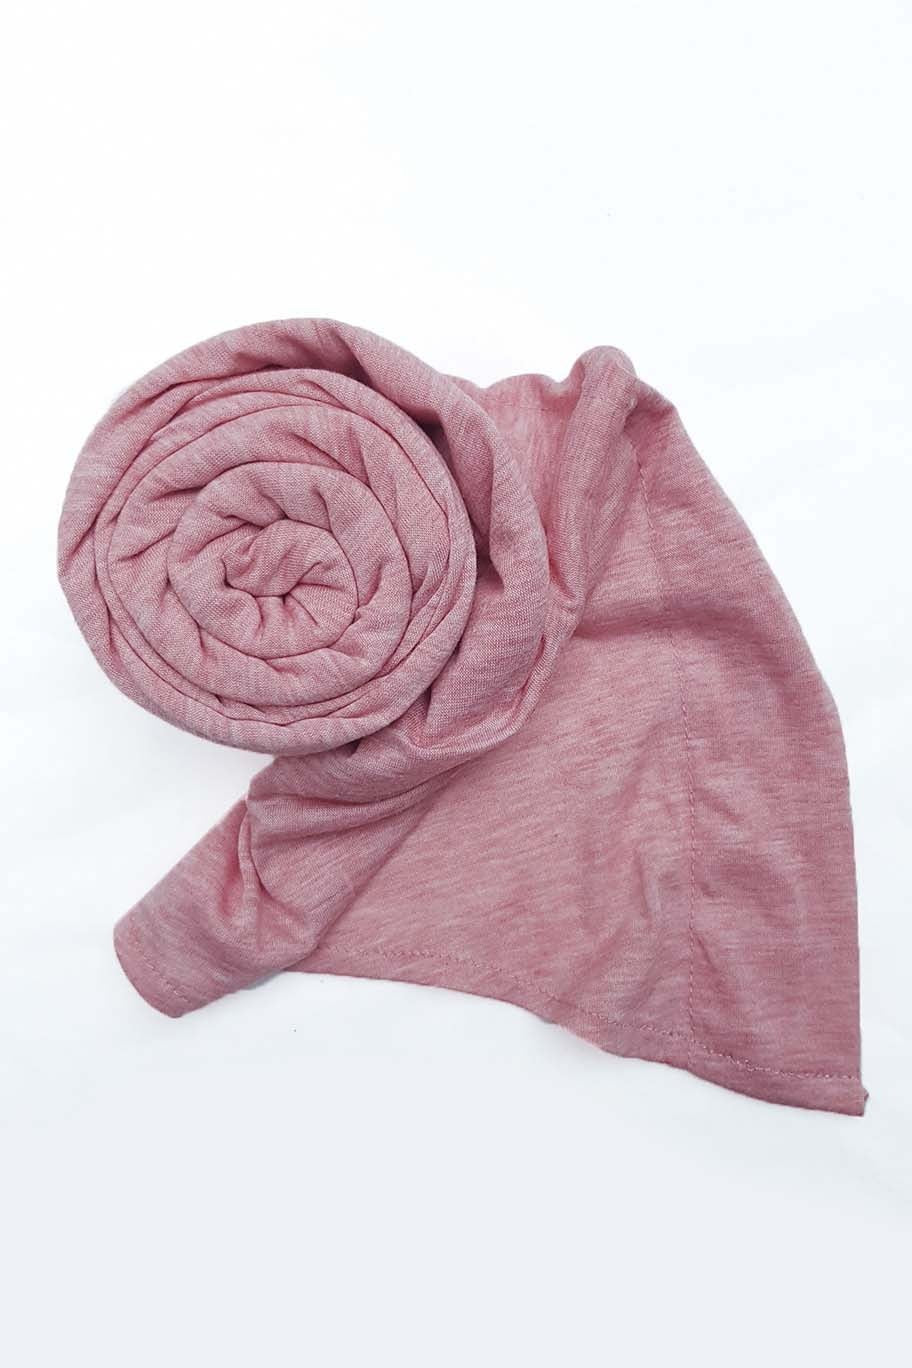 Carnation Pink Jersey Hijab (Separate Inner Cap Included) - Jersey Hijab - The Modest Look